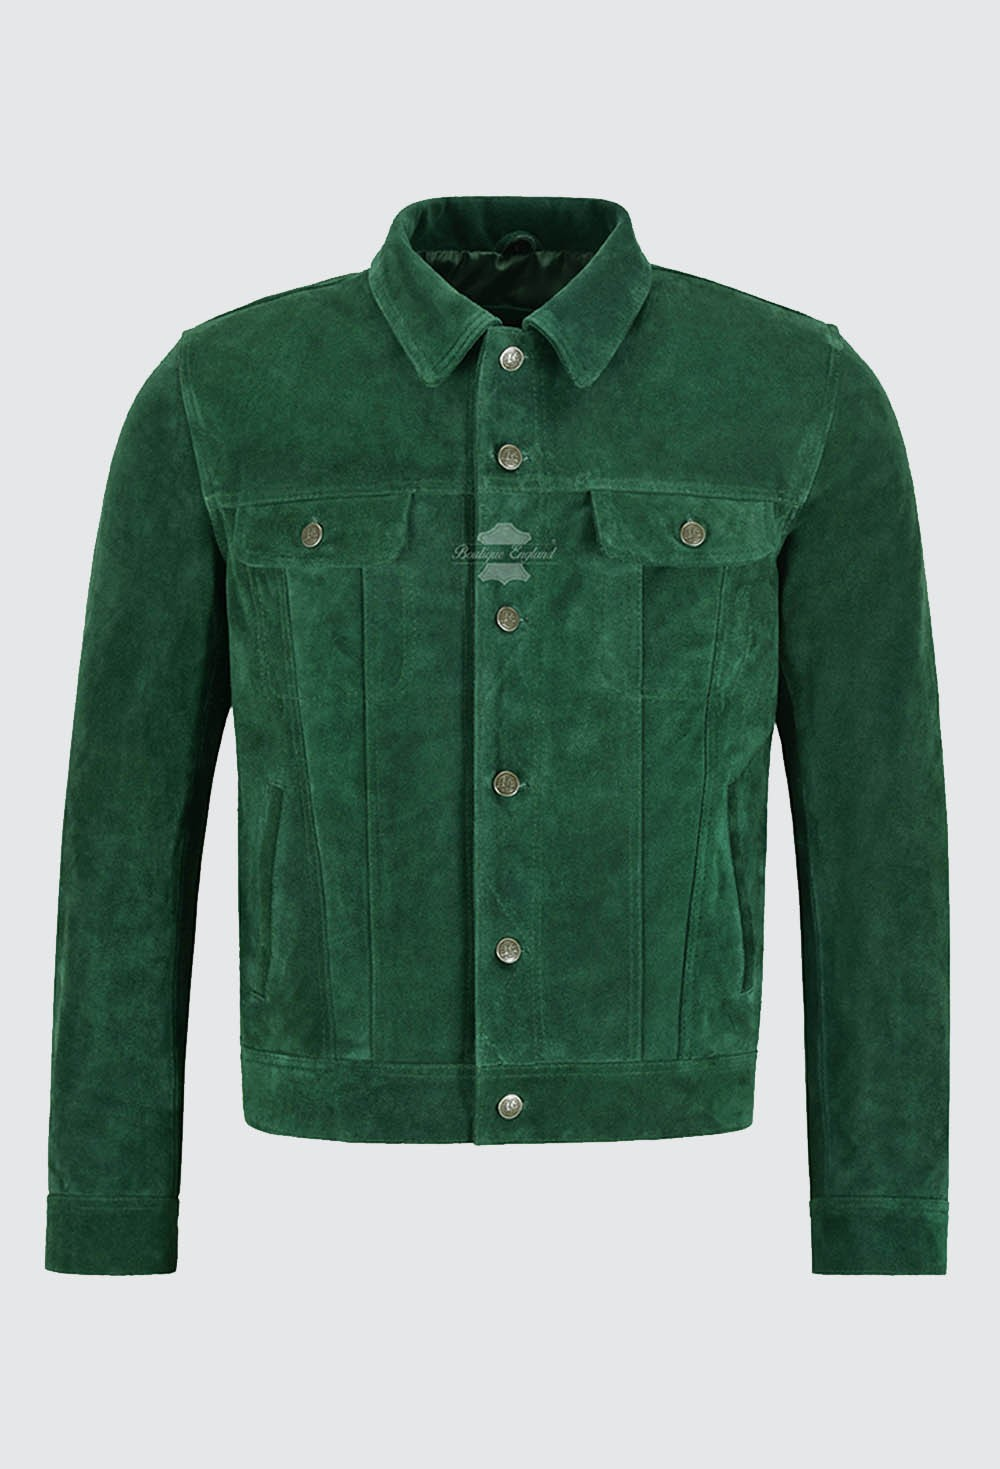 Men's Trucker Real Leather Jacket Green Suede Casual Fashion Biker Style 1280